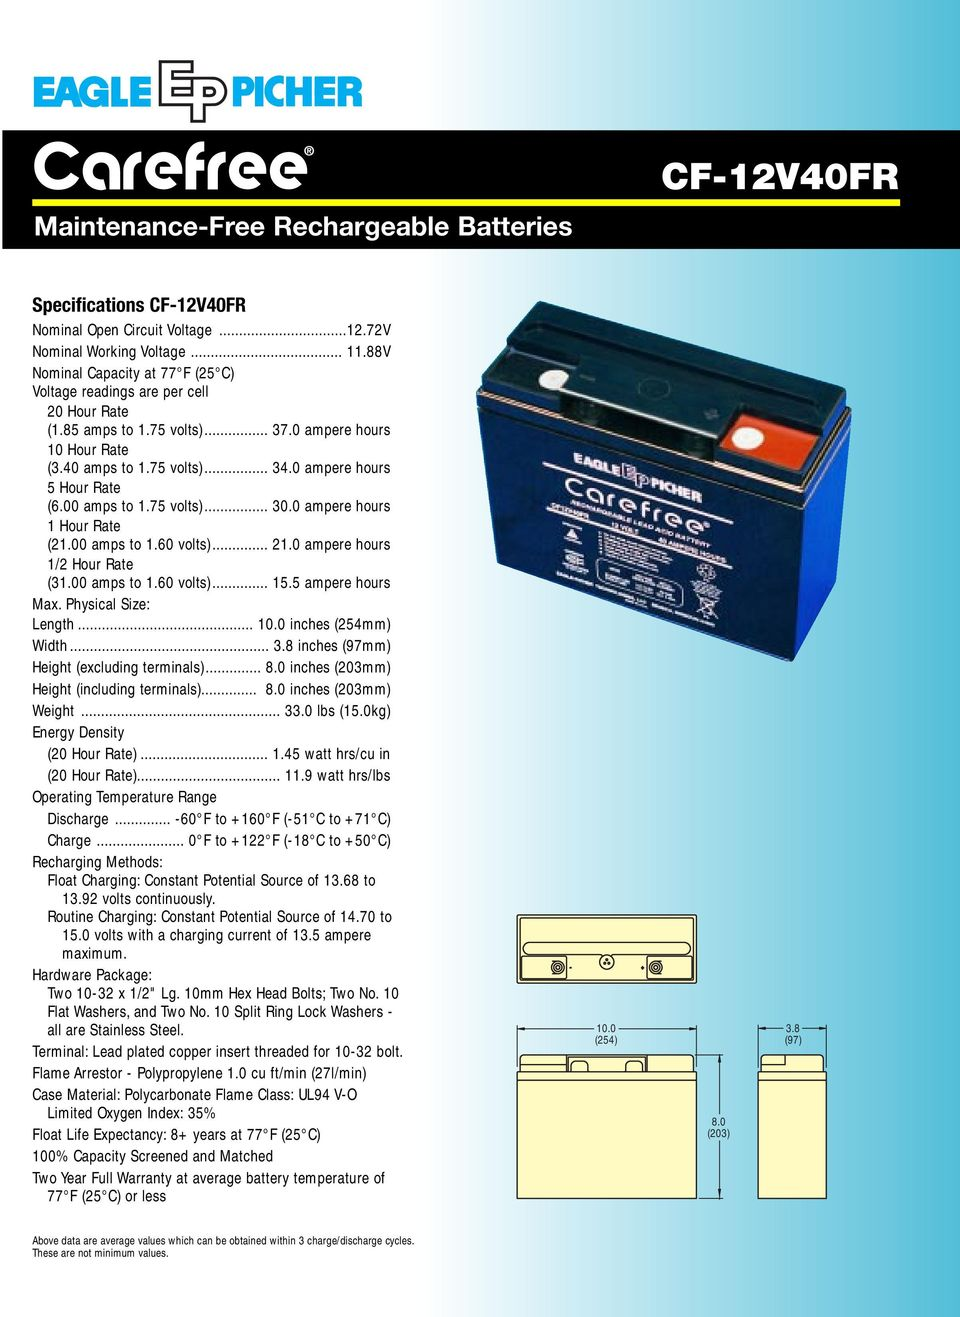 ampere hours 1/2 Hour Rate (31. amps to 1.6 volts)... 15.5 ampere hours Max. Physical Size: Length... 1. inches (254mm) Width... 3.8 inches (97mm) Height (excluding terminals)... 8.